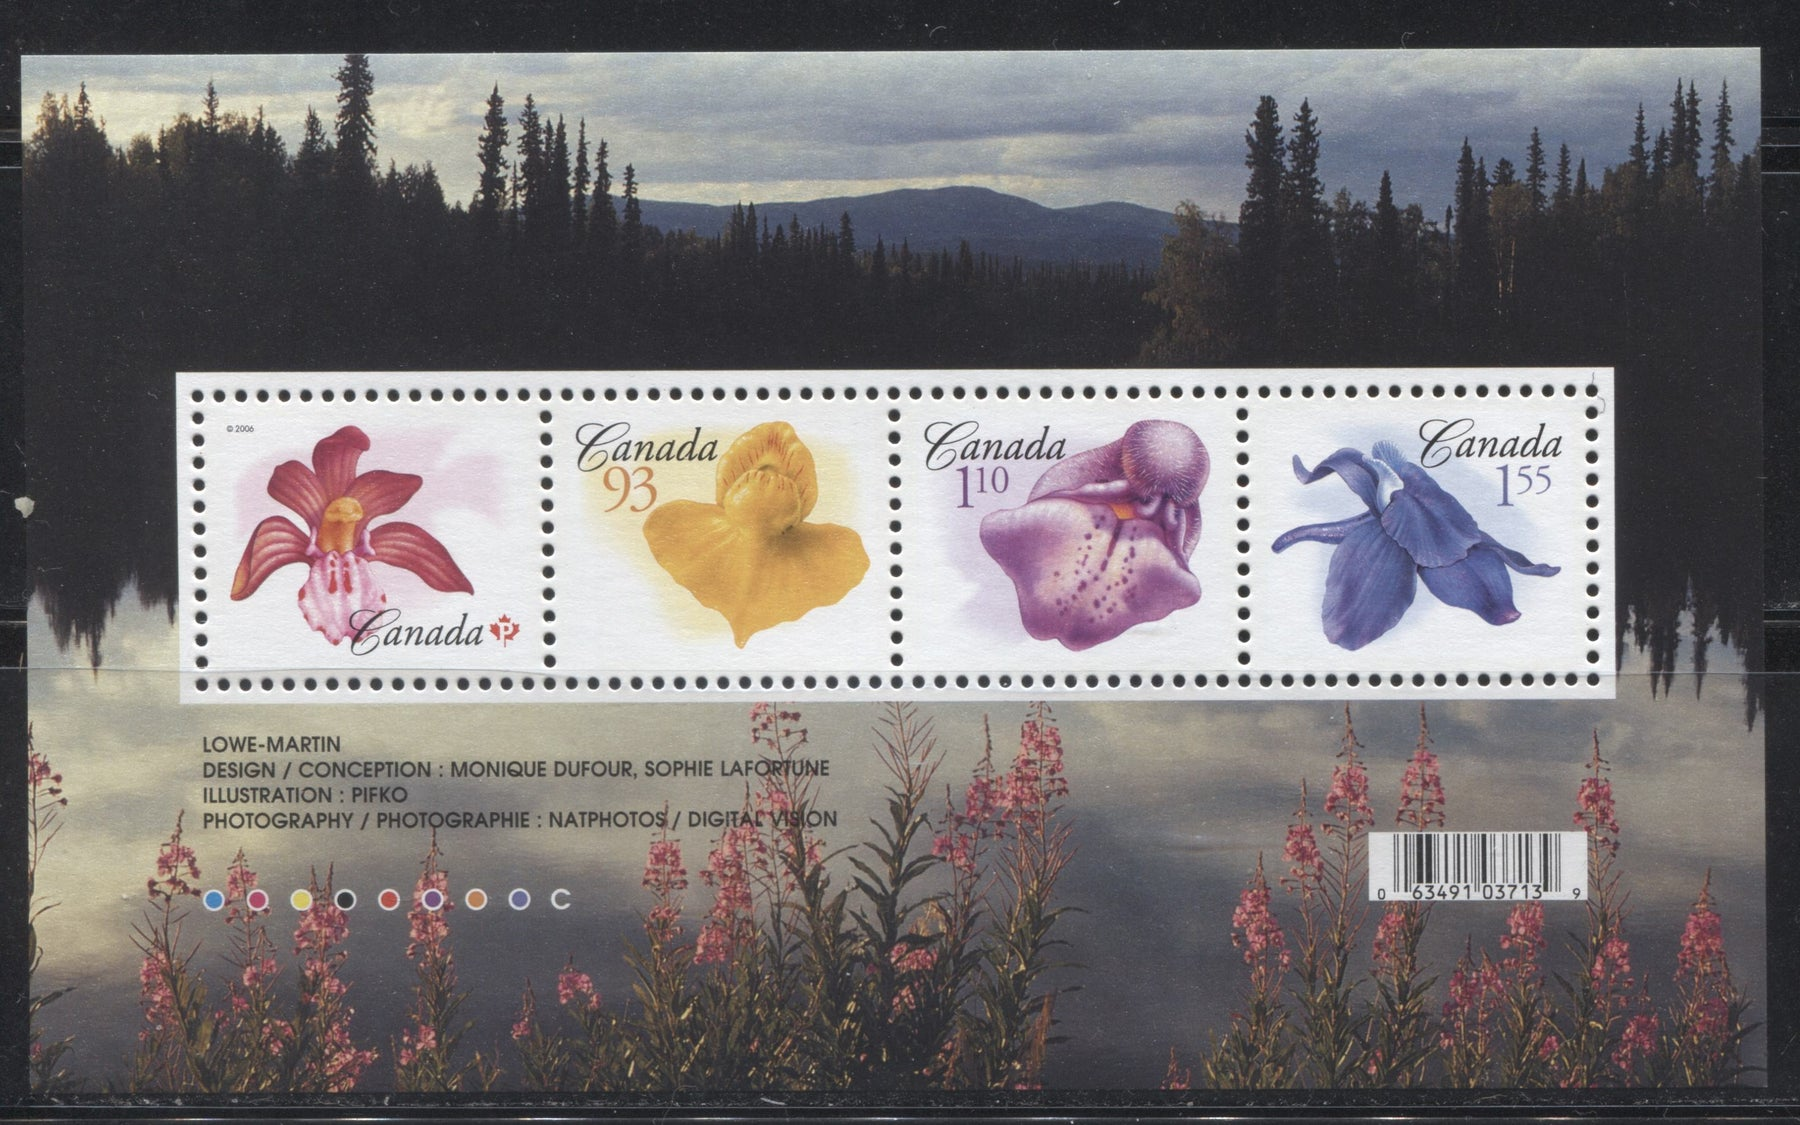 Canada #2194 Permanent(52c)-$1.55 Multicolored Flower Definitives Souvenir Sheet From the Floral And Flag Issue 2004-2010